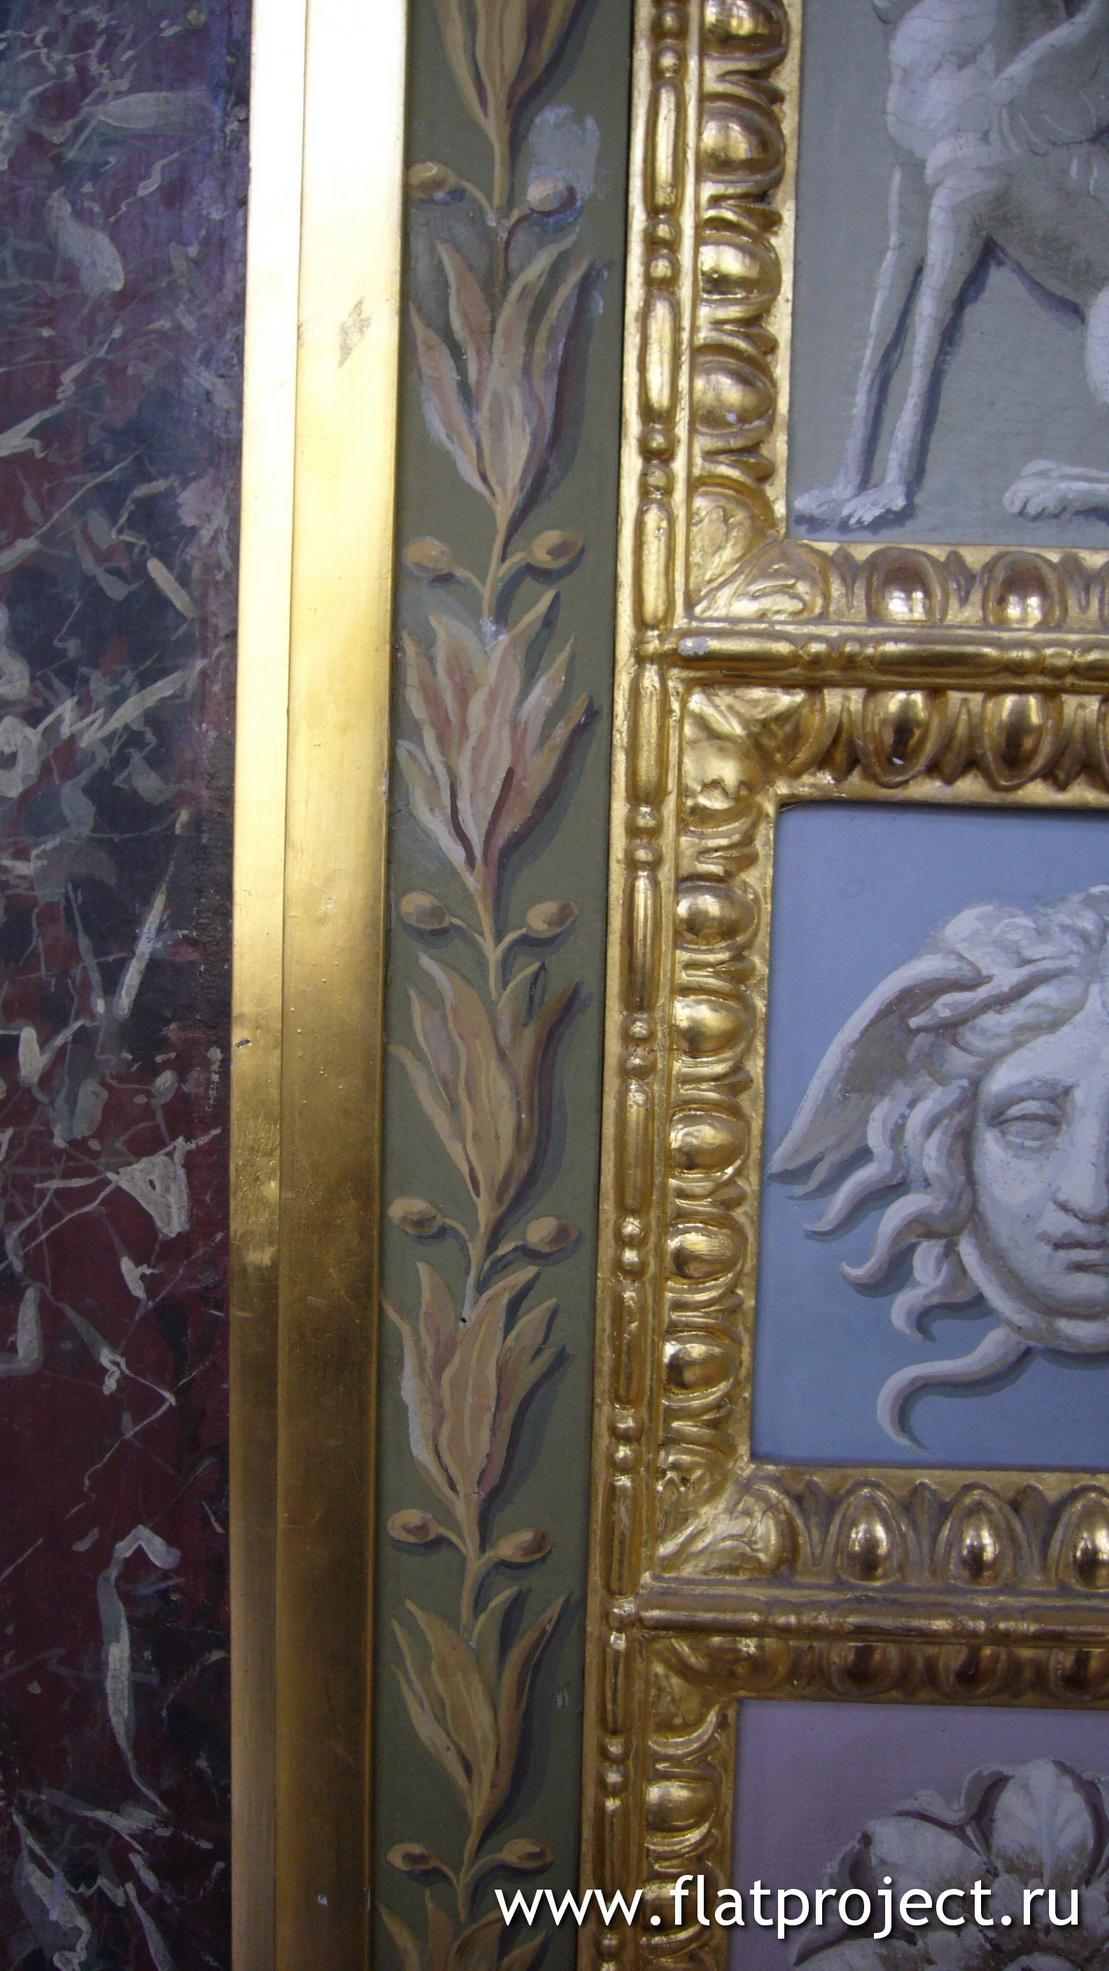 The State Hermitage museum interiors – photo 167